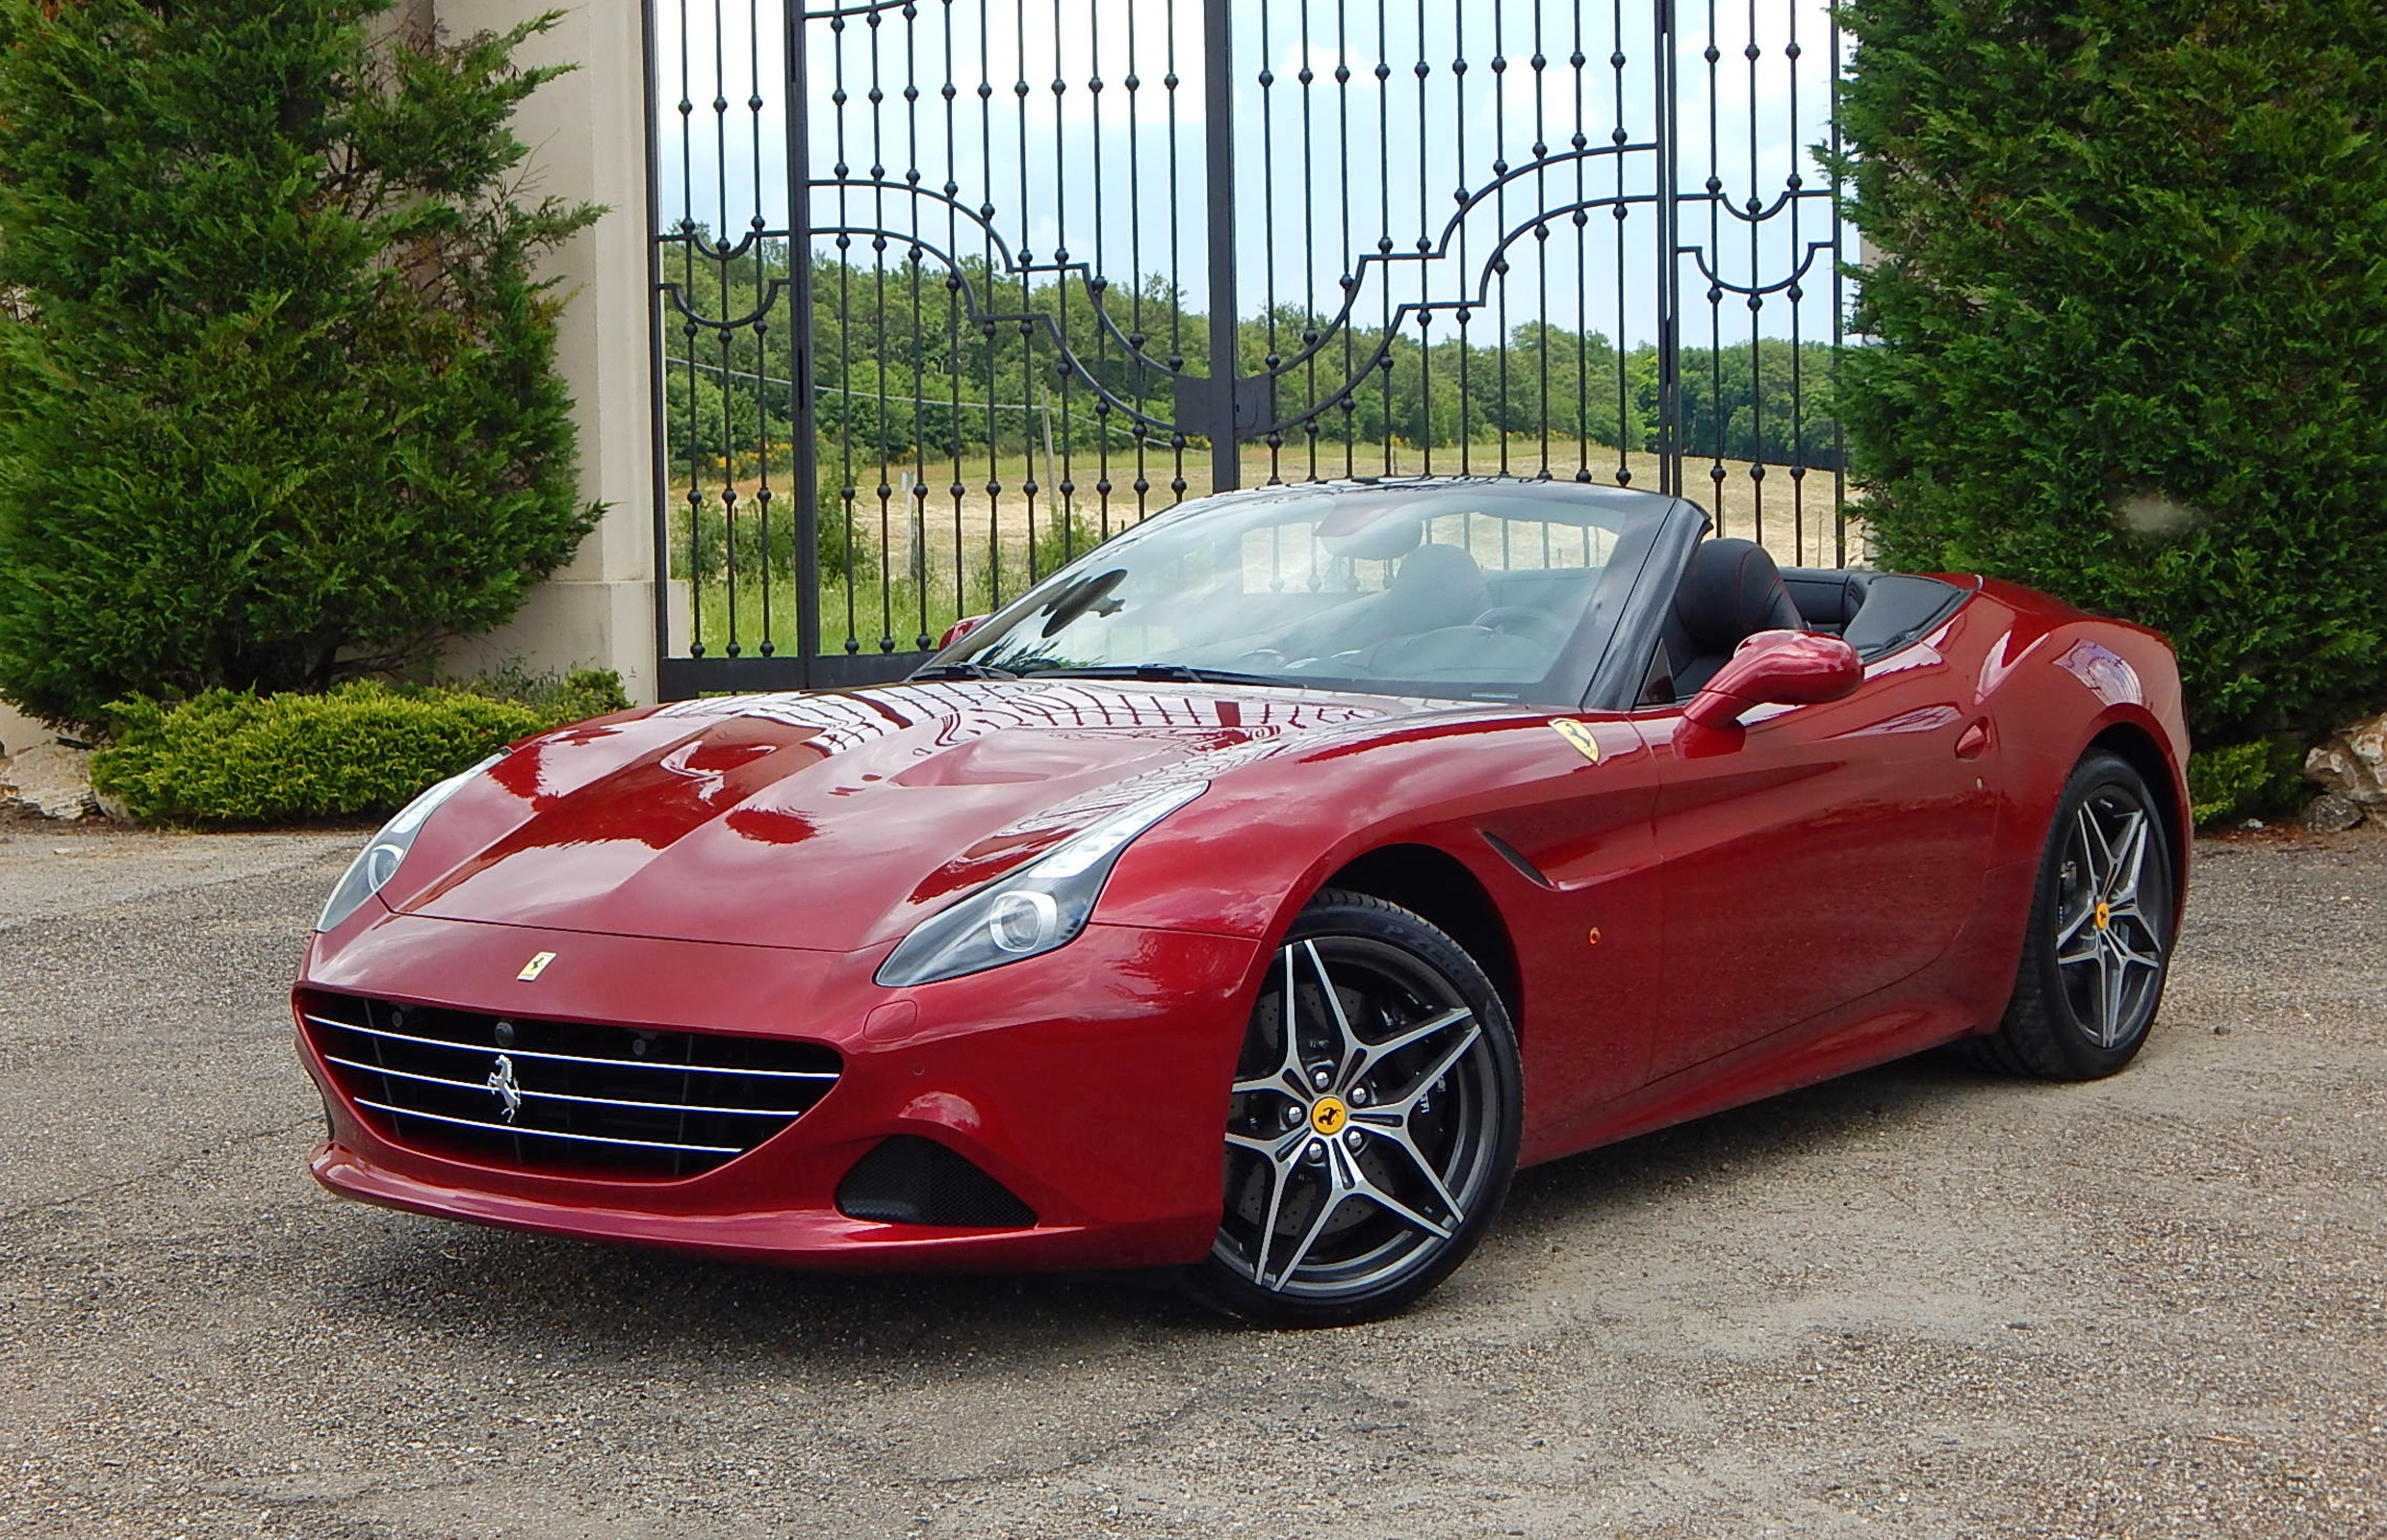 New 2015 Ferrari California T